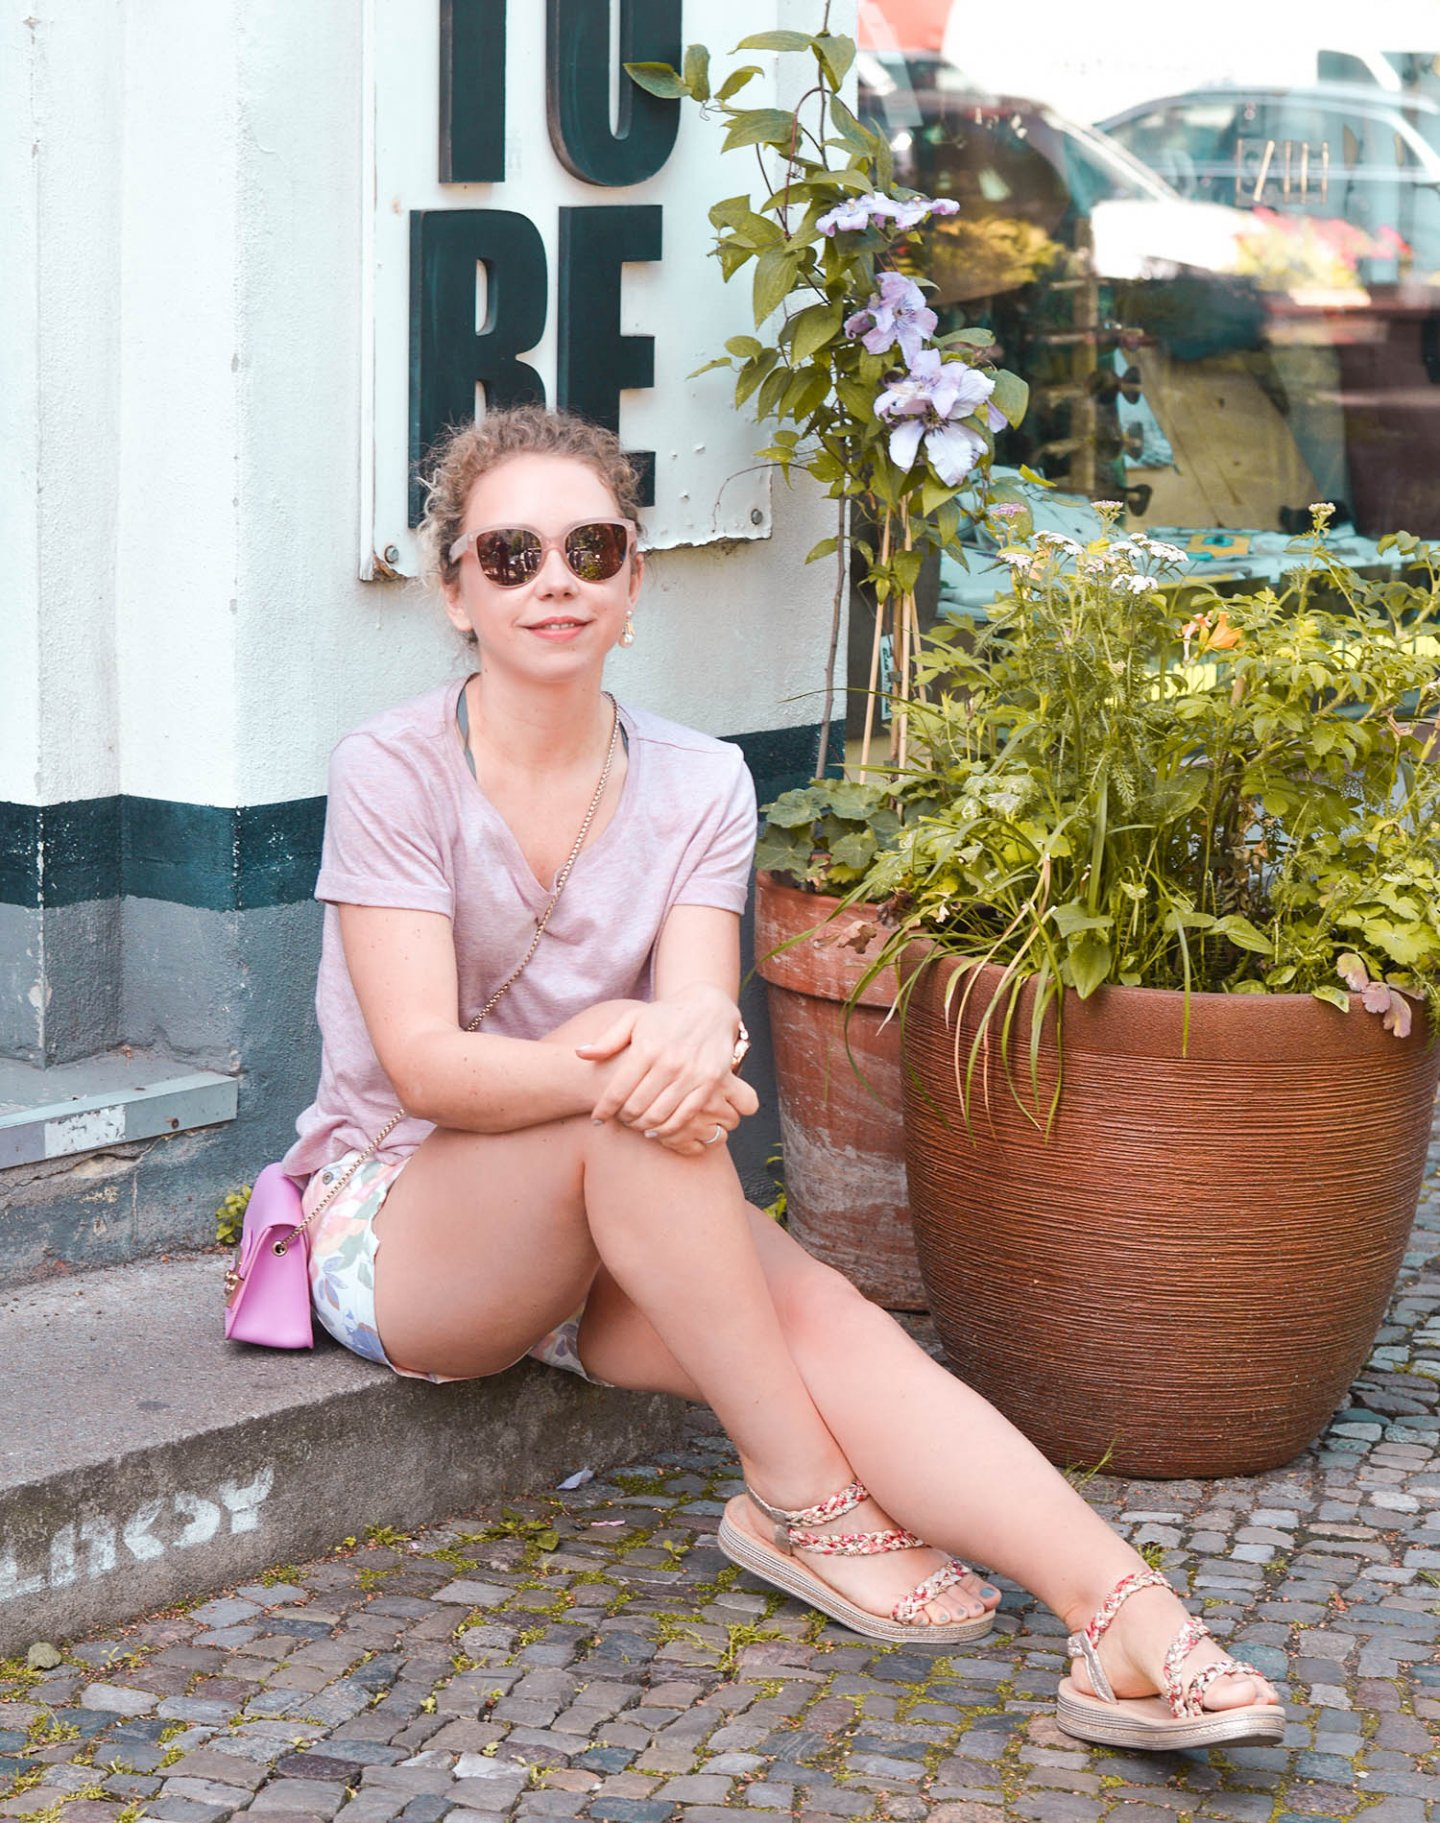 rosa Sommerlook in Berlin